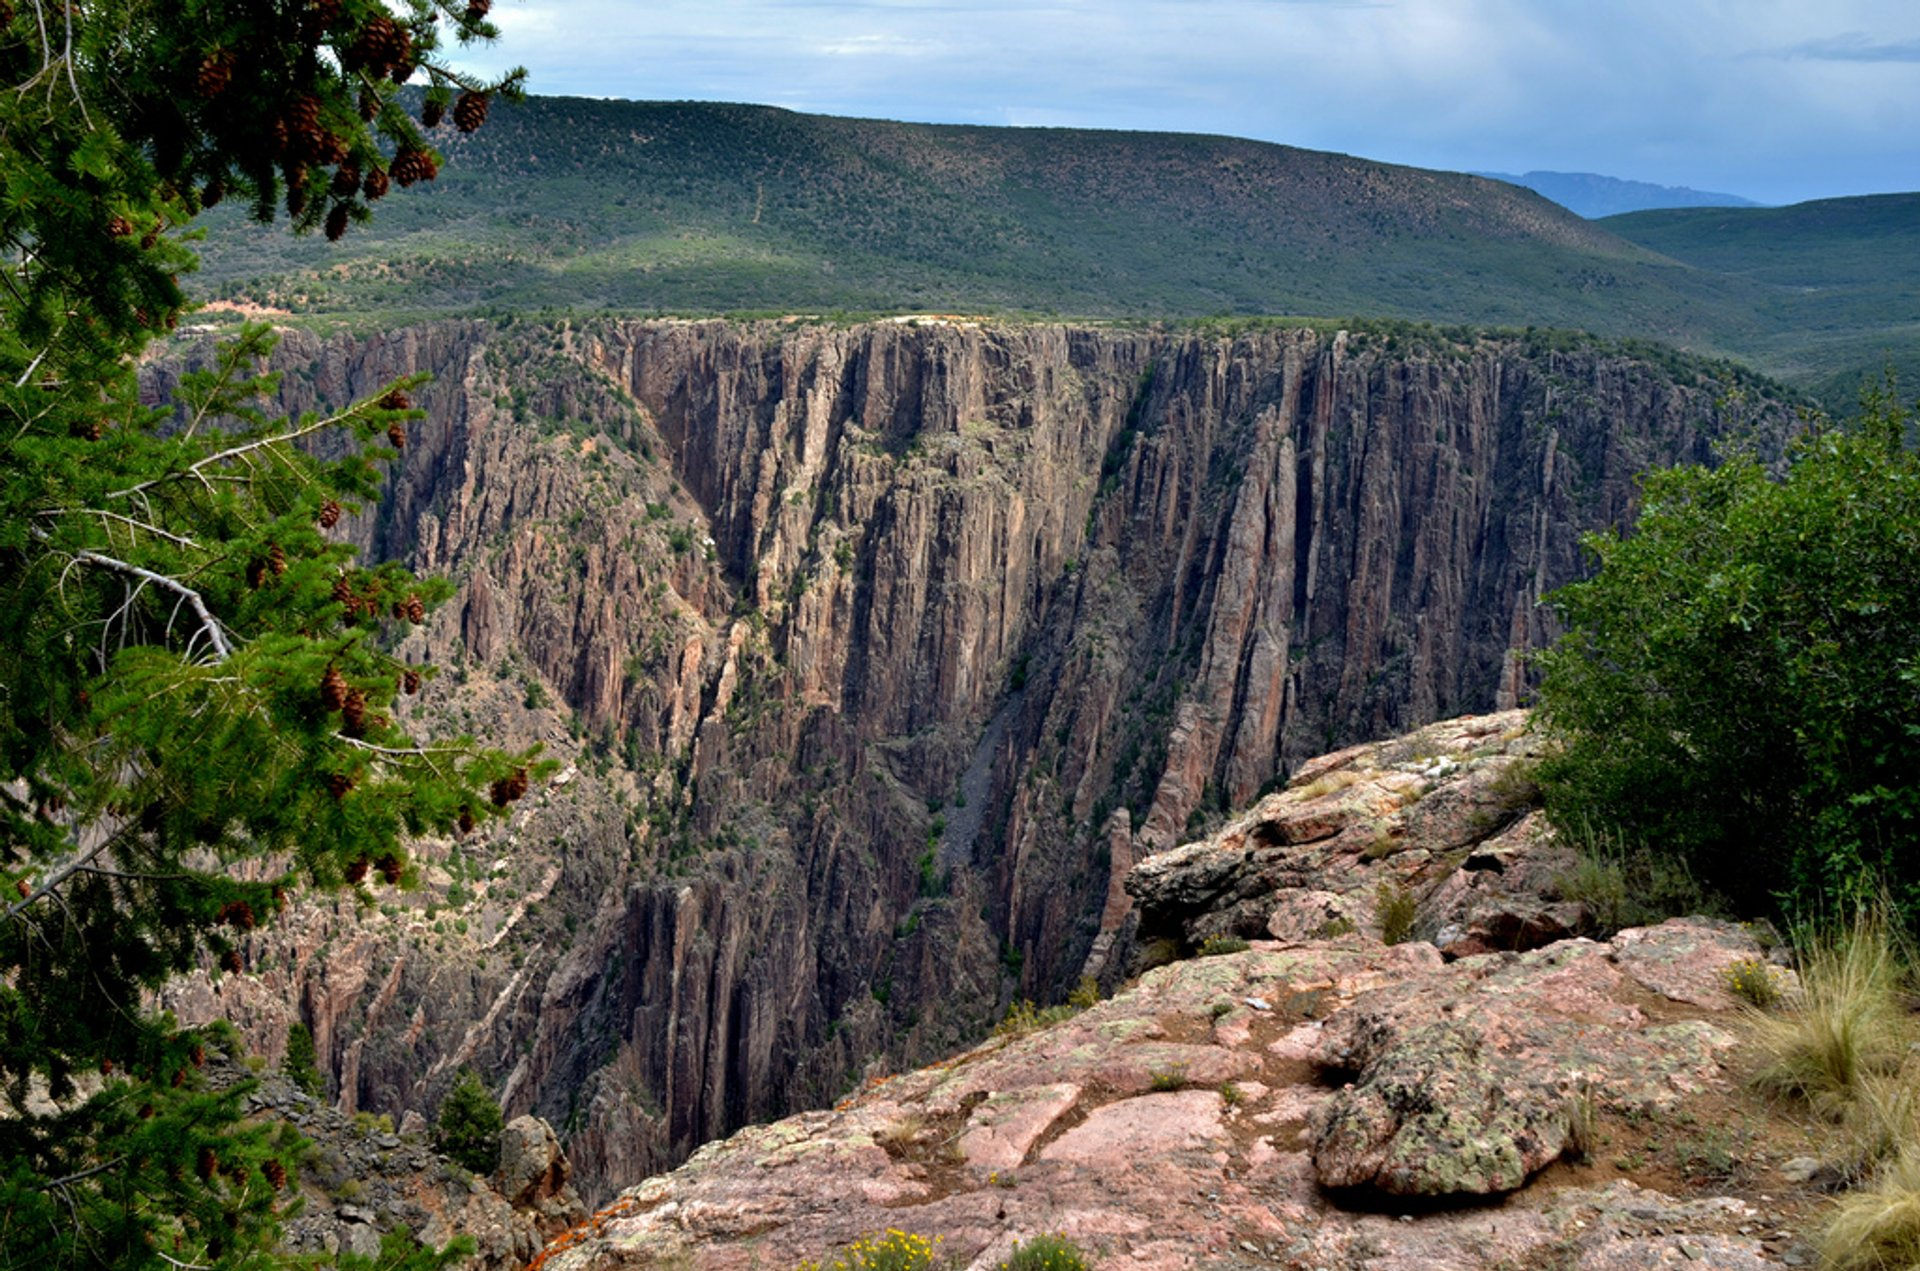 Black Canyon of the Gunnison National Park in Colorado 2020 - Best Time